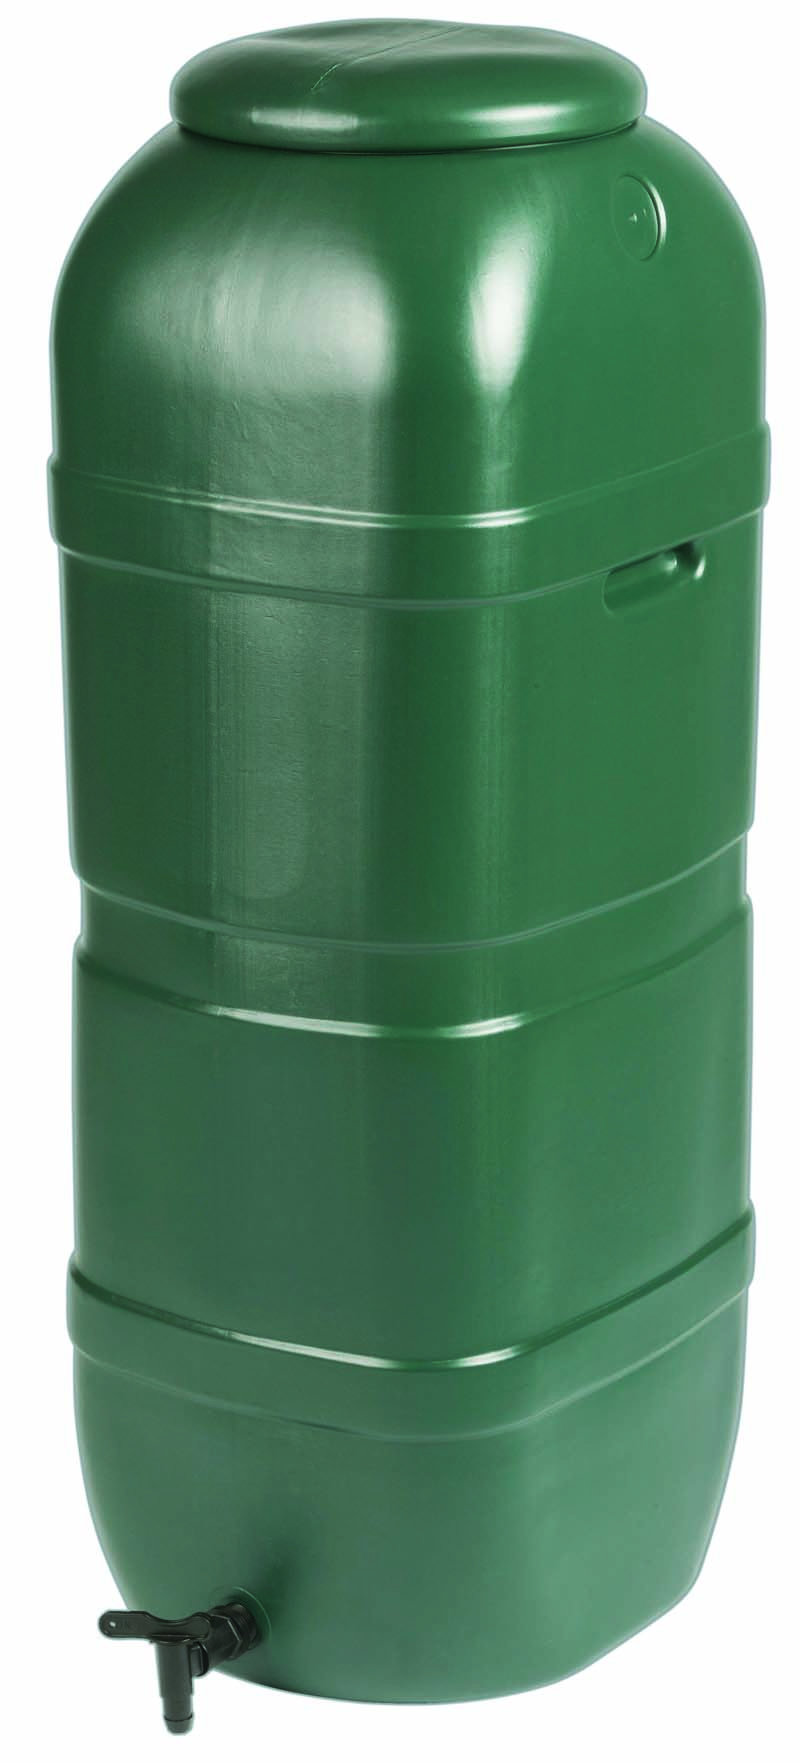 FLOPLAST 100 LITRE SLIM WATER BUTT ONLY - WB100